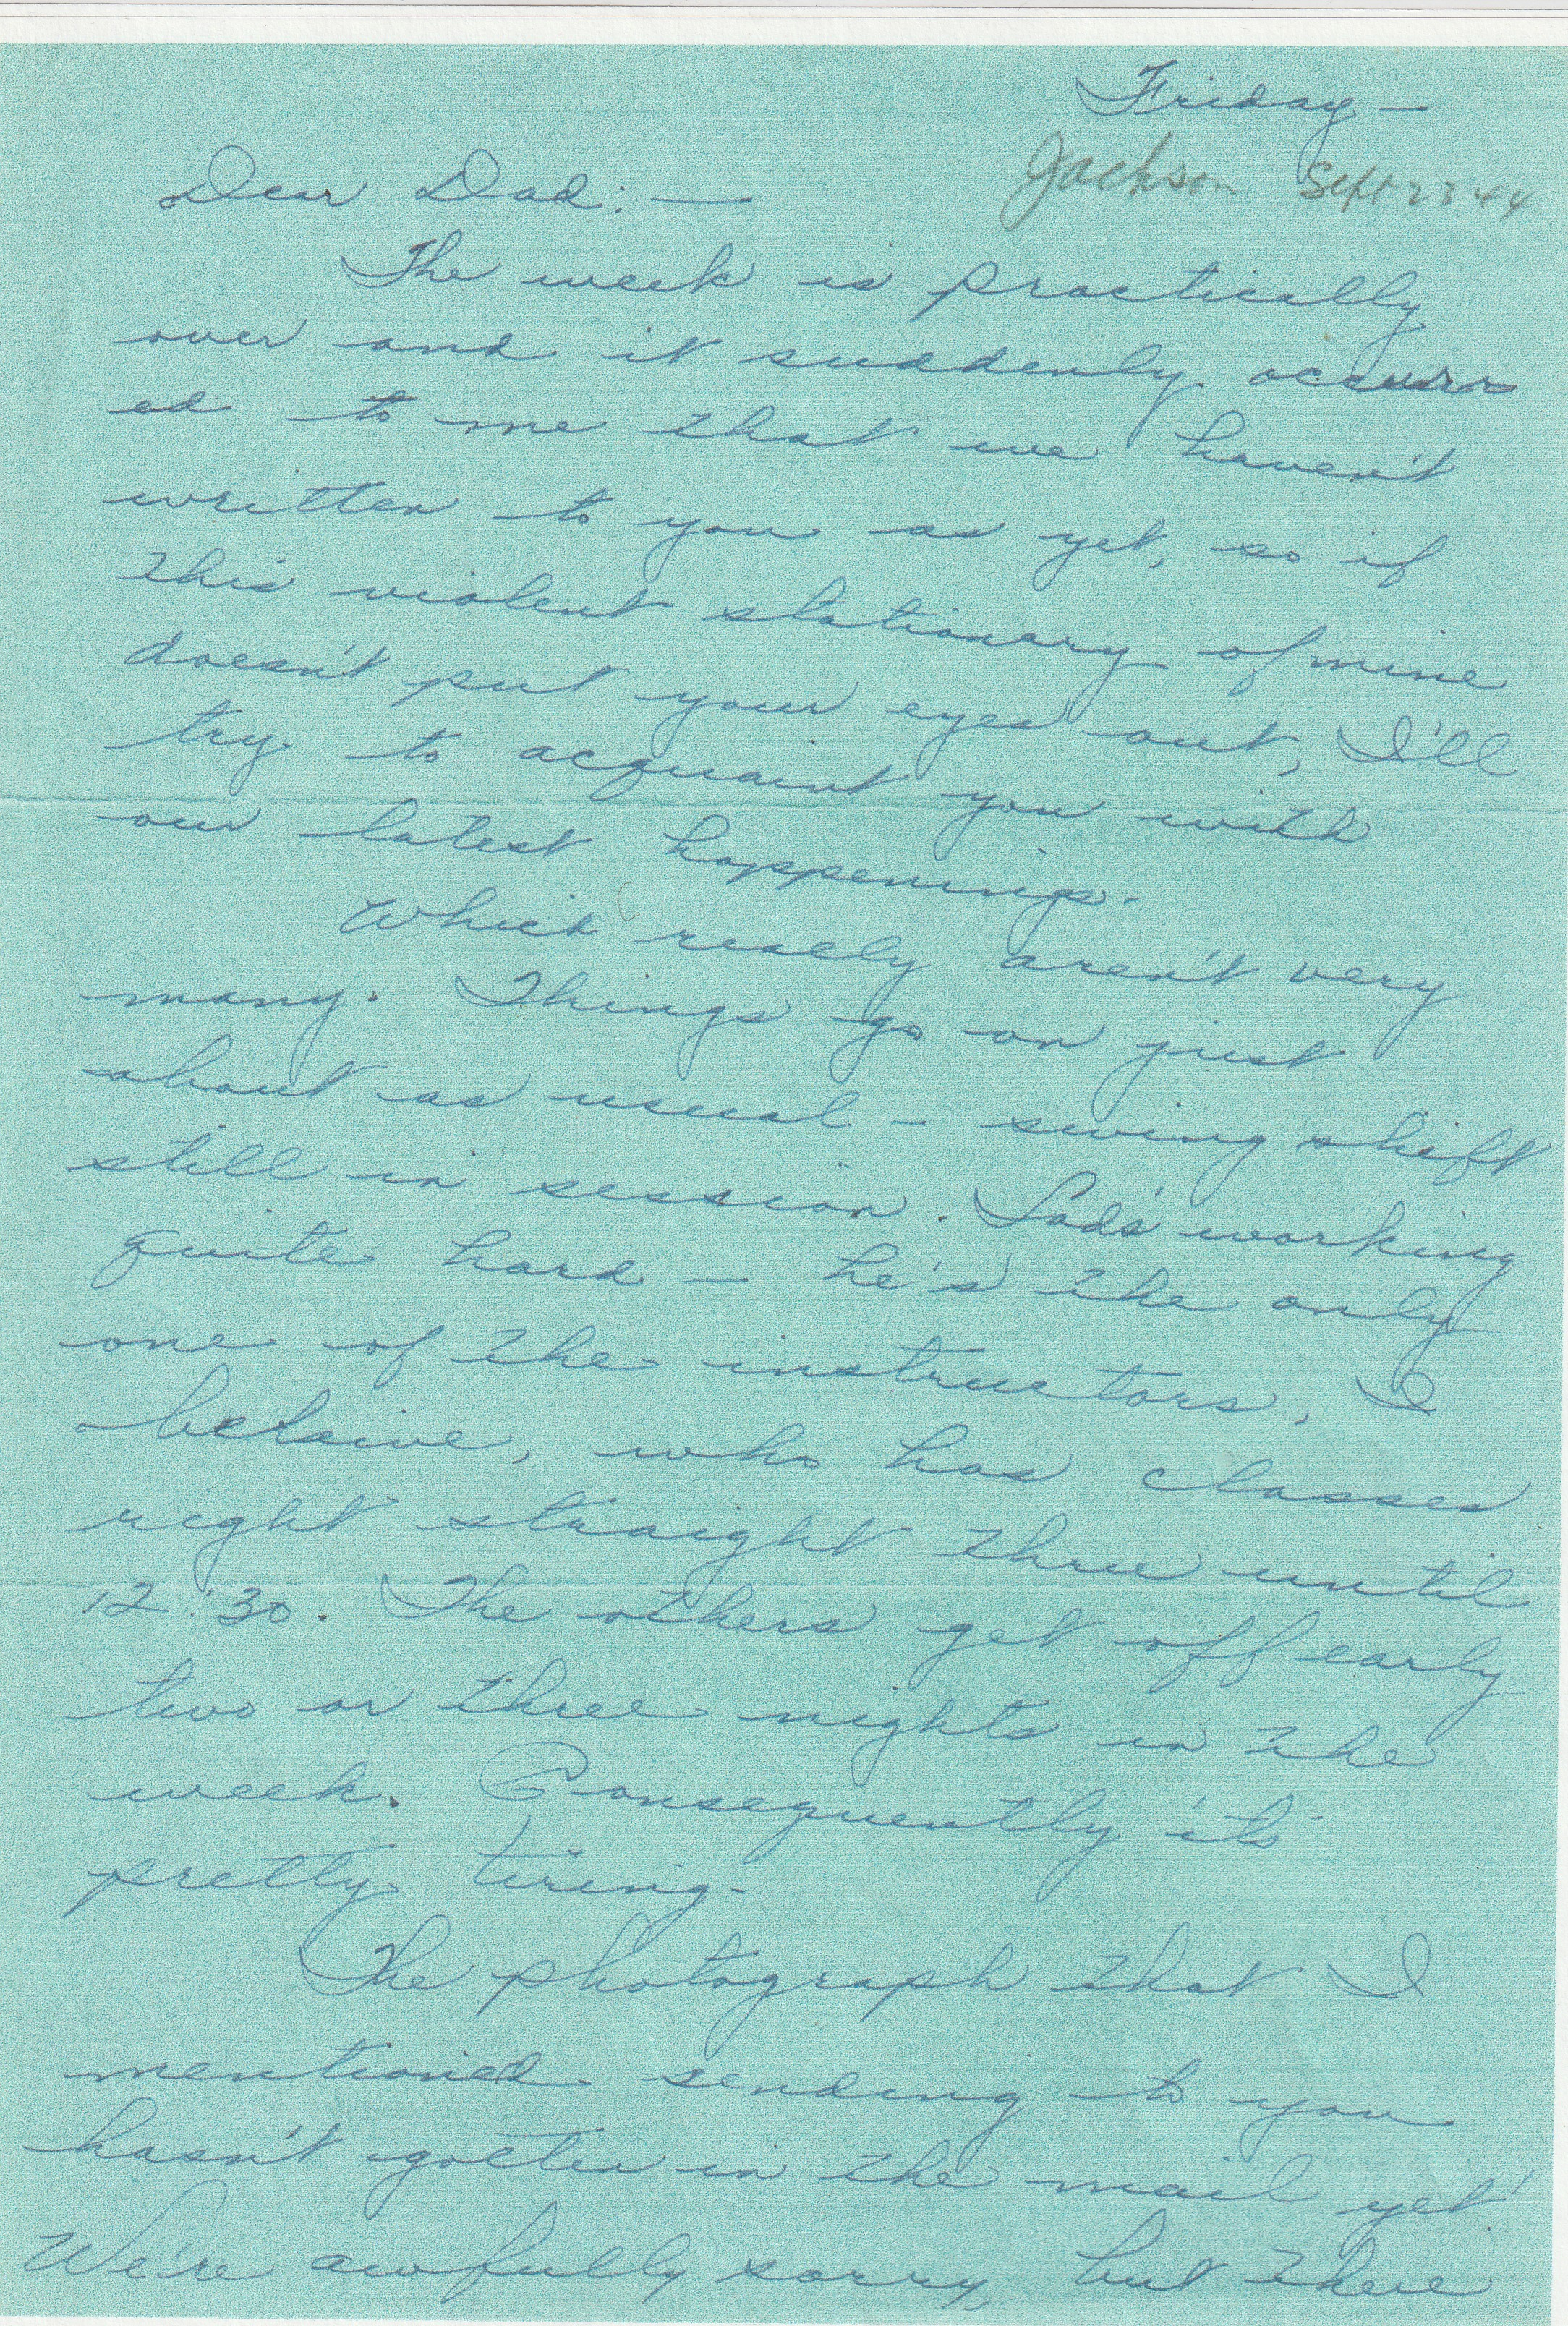 MIG - Army Life - Marian Writes To Grandpa From Jackson Mississippi - September 22, 1944